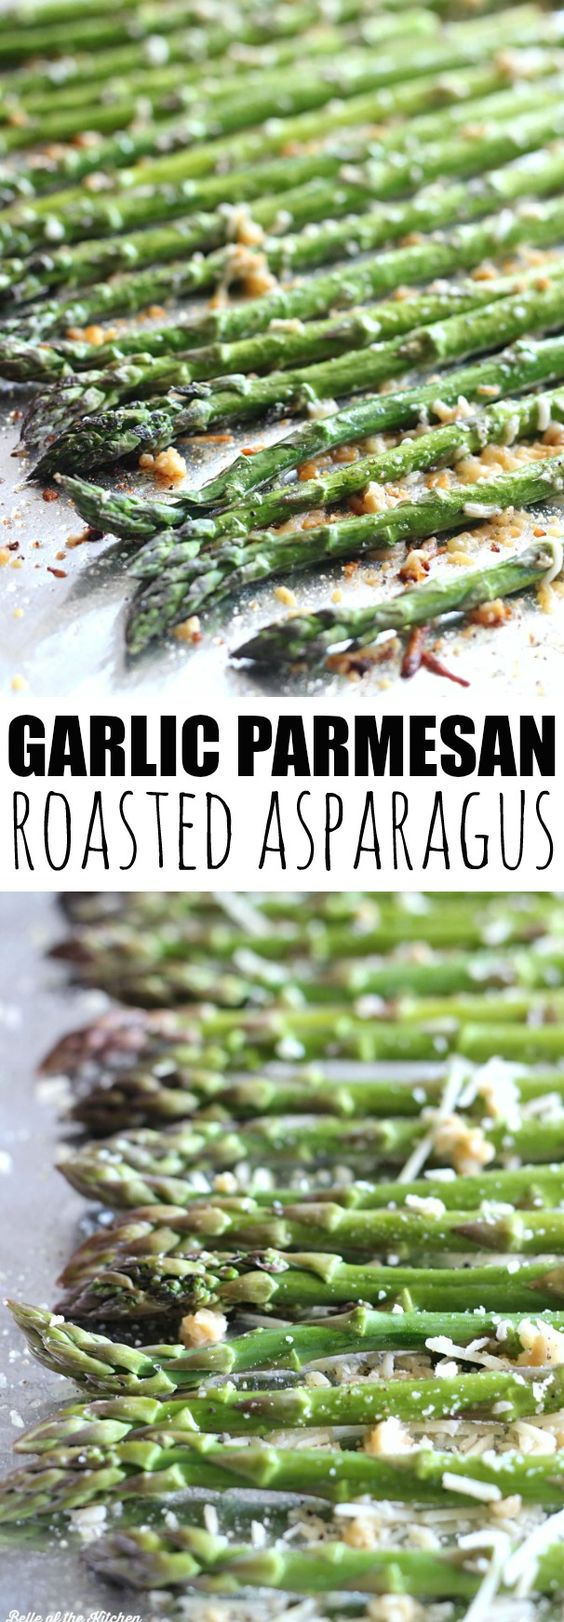 Garlic Parmesan Roasted Asparagus.